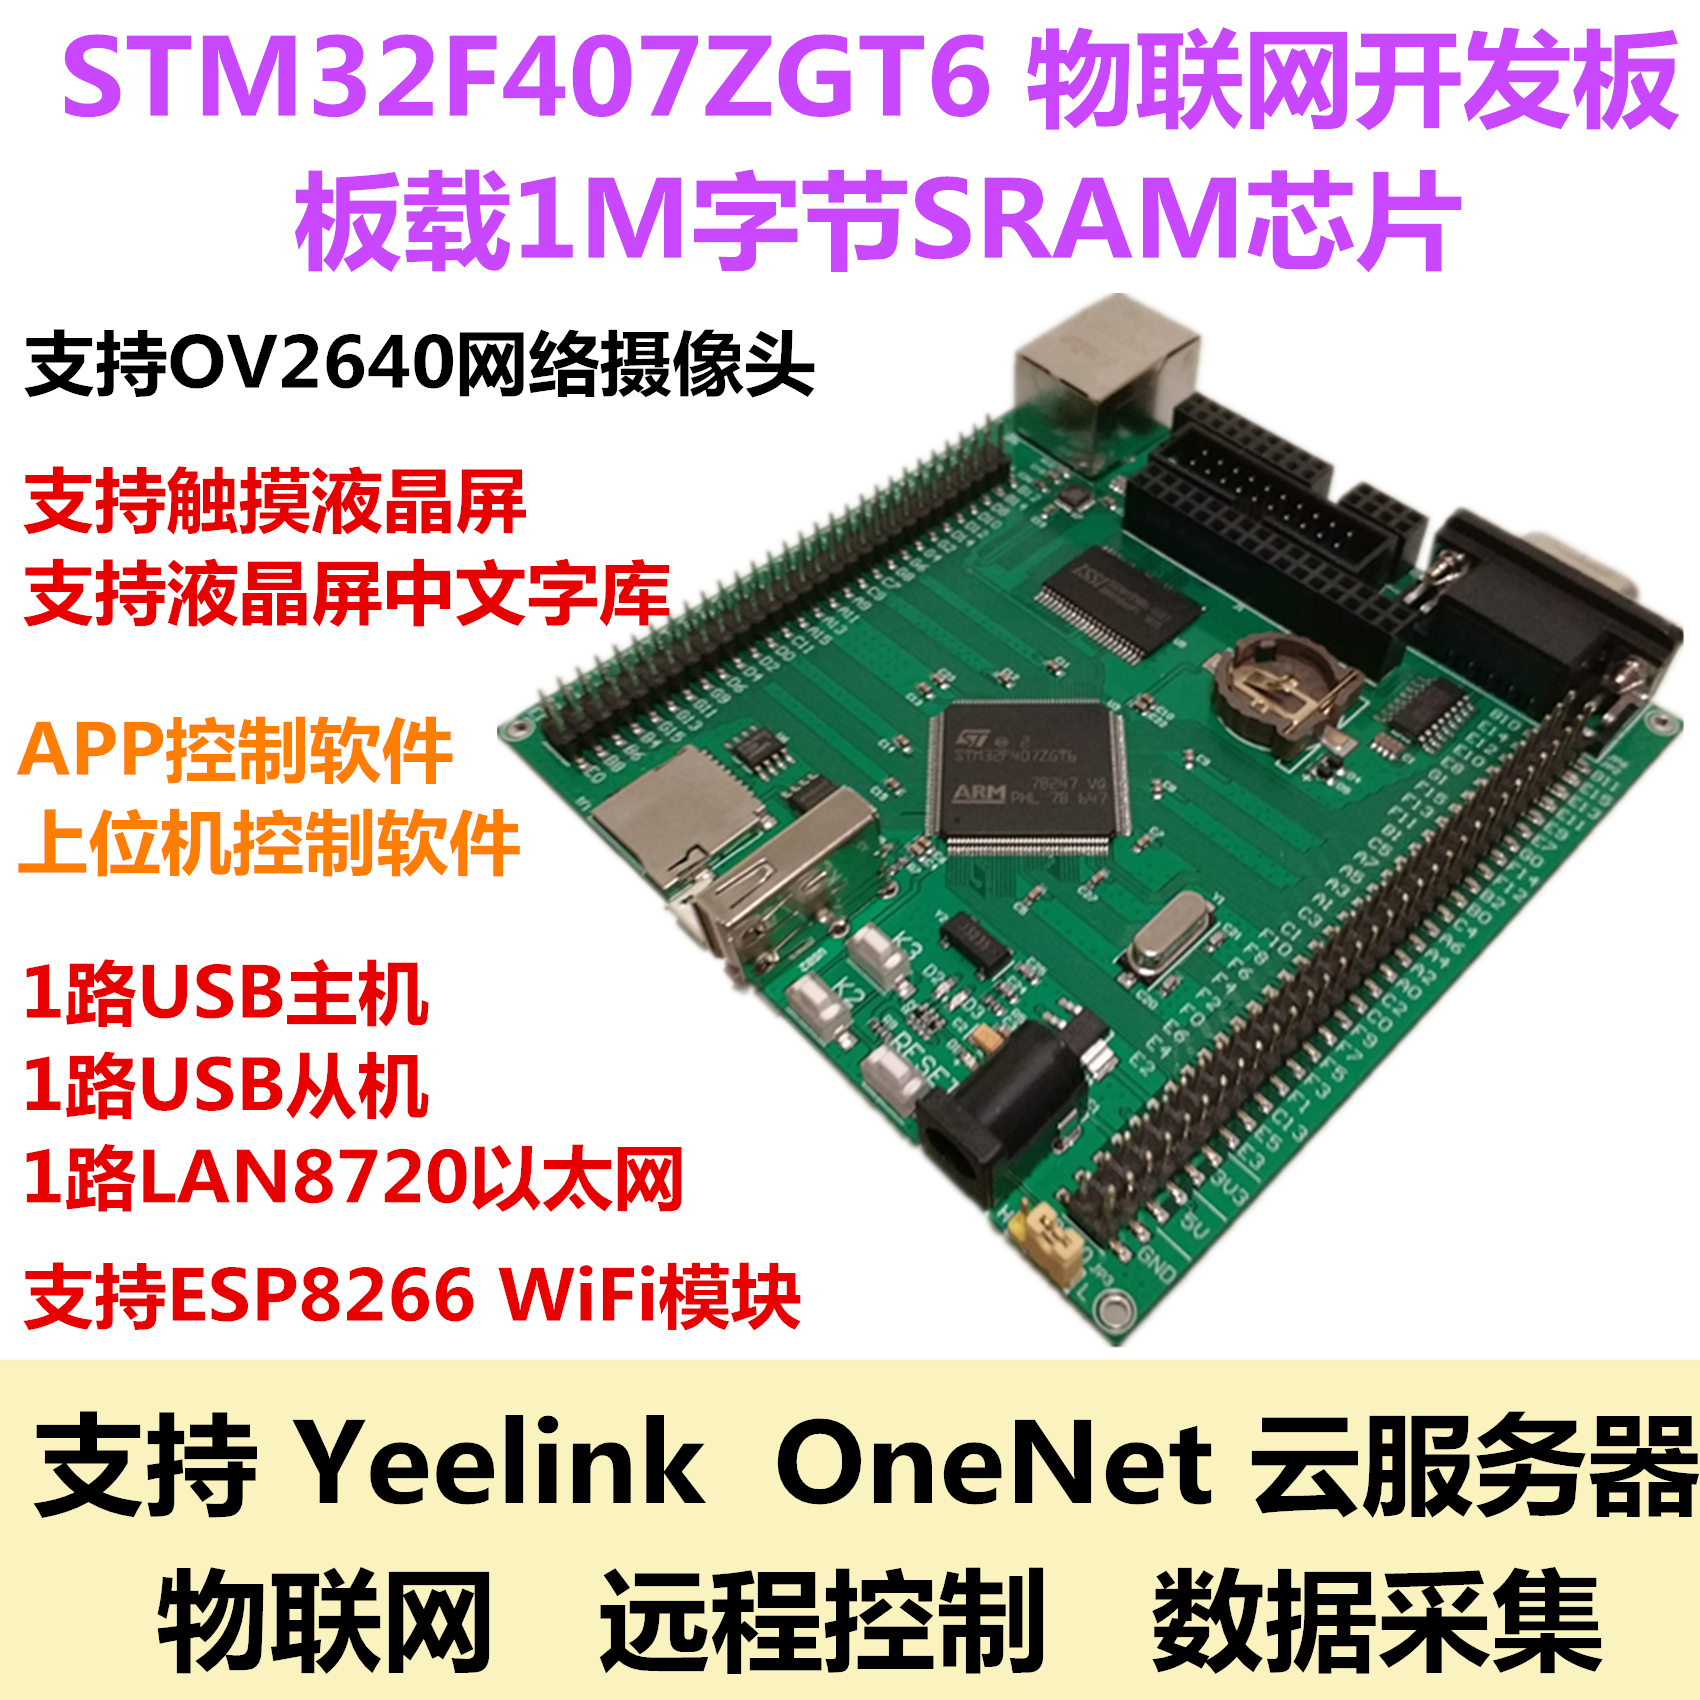 Internet of Things, WiFi Stm32f407zgt6 Development Board, Remote Control, Cloud Server, Intelligent Things